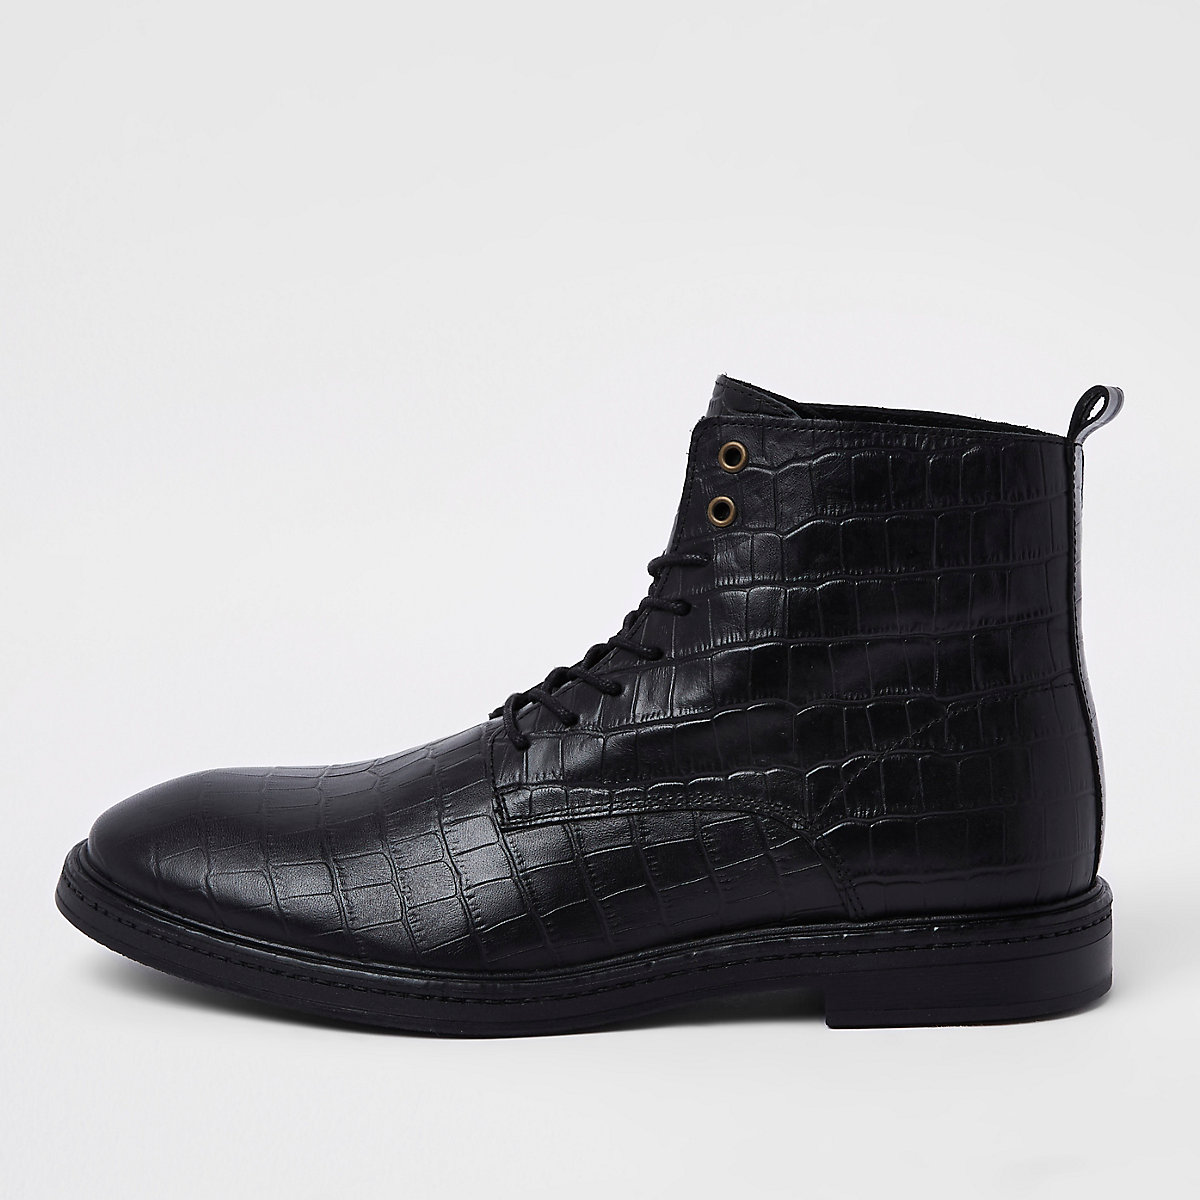 Black croc embossed leather boots